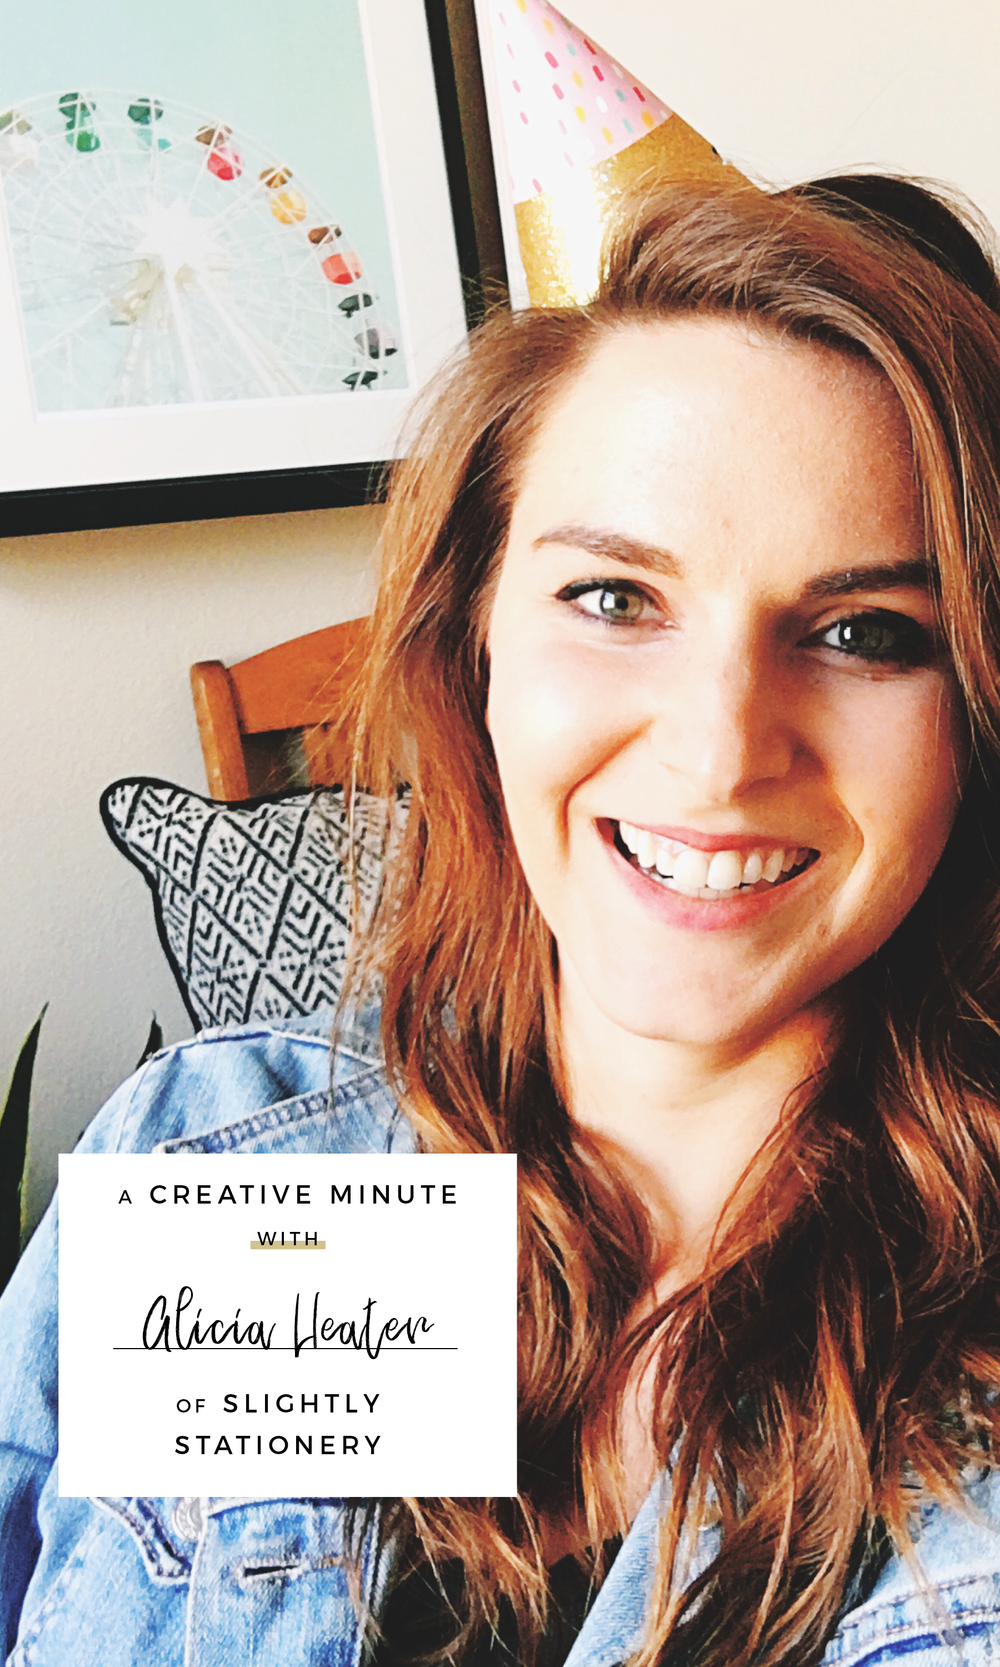 A Creative Minute With... Alicia Heater of Slightly Stationery